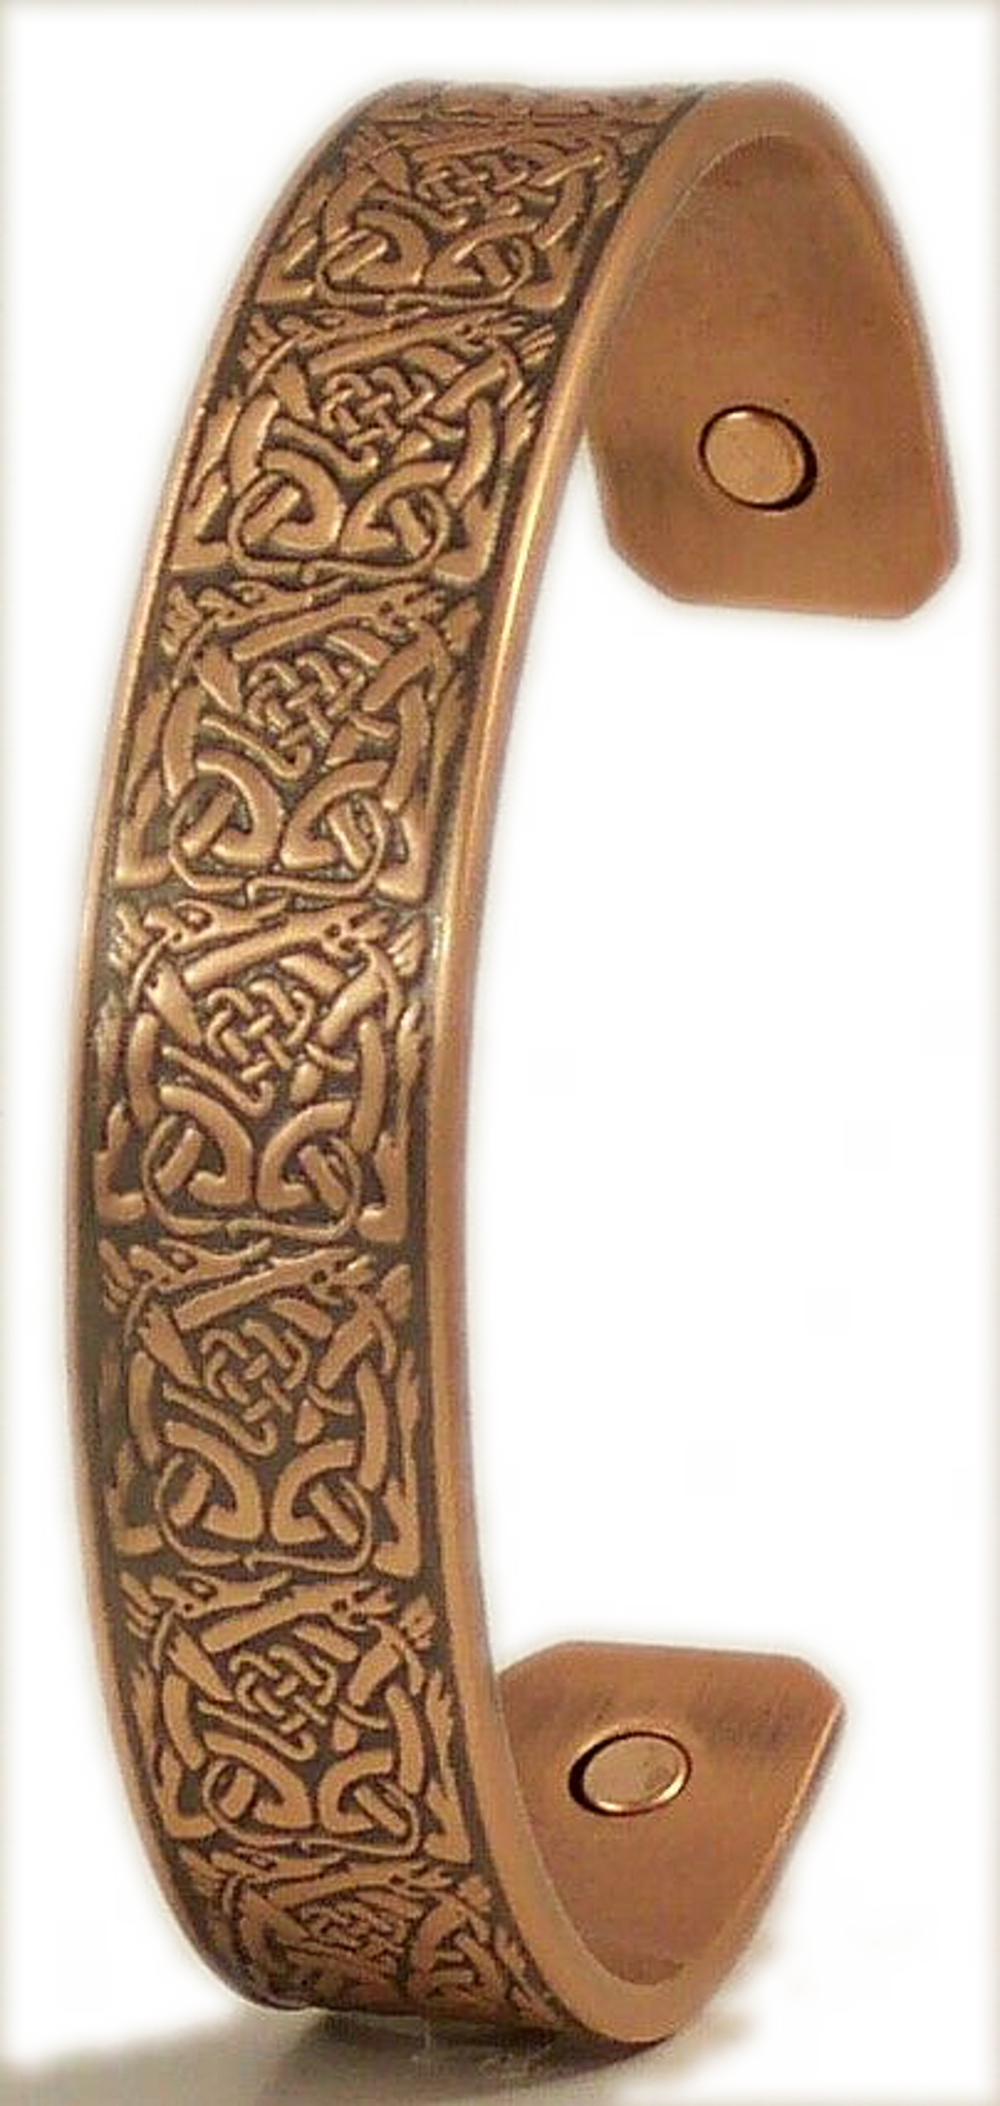 Pure By Coppercraft Celtic Copper Magnetic Bracelet Med/Lrg - Perfect Gift